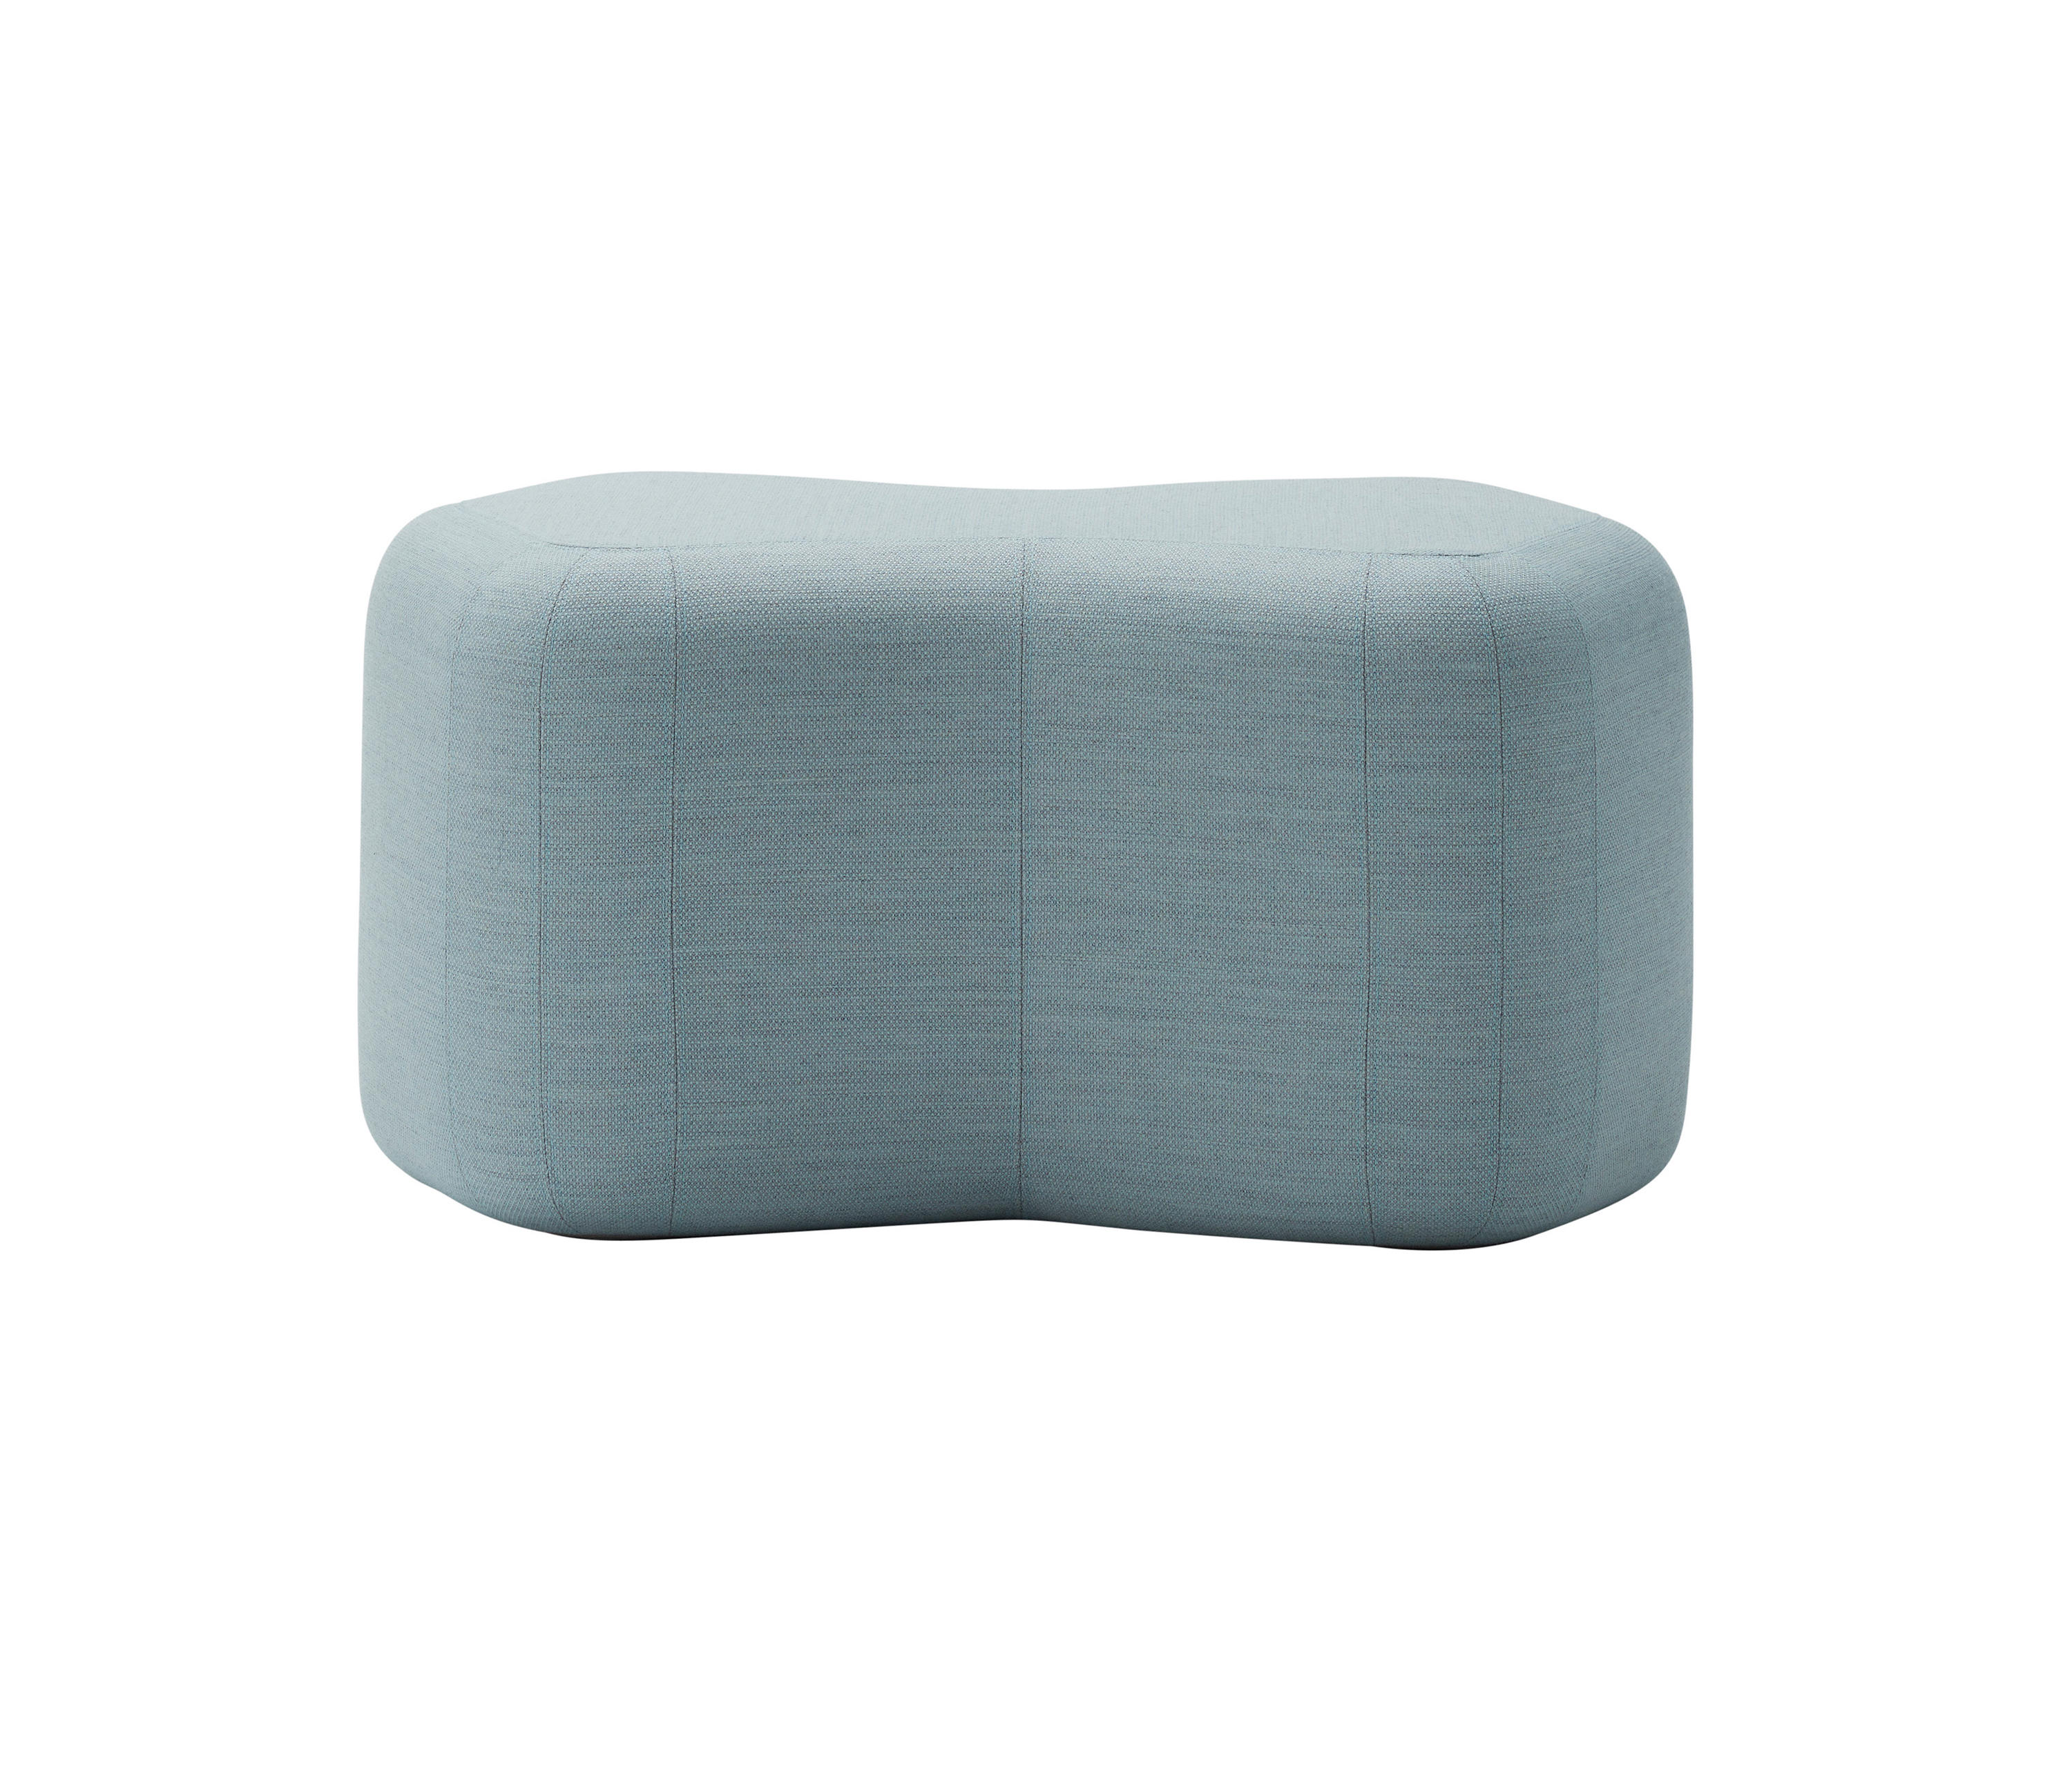 it coral with pouf ottoman have coast modern in round outdoor valencia poof to furniture com fulczyk